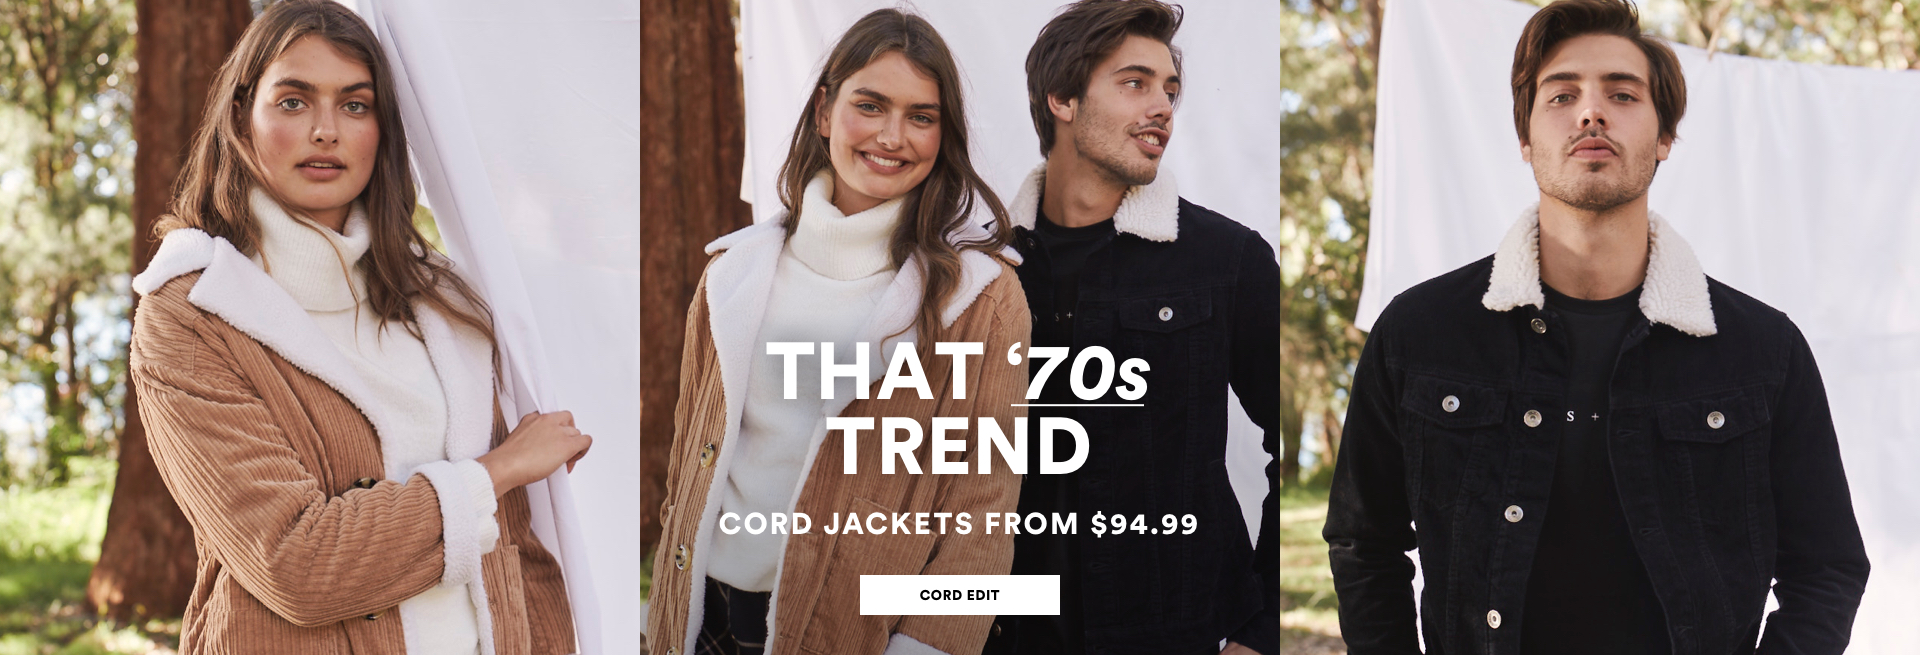 That 70's trend. Cord jackets from $94.99. Shop the cord edit.